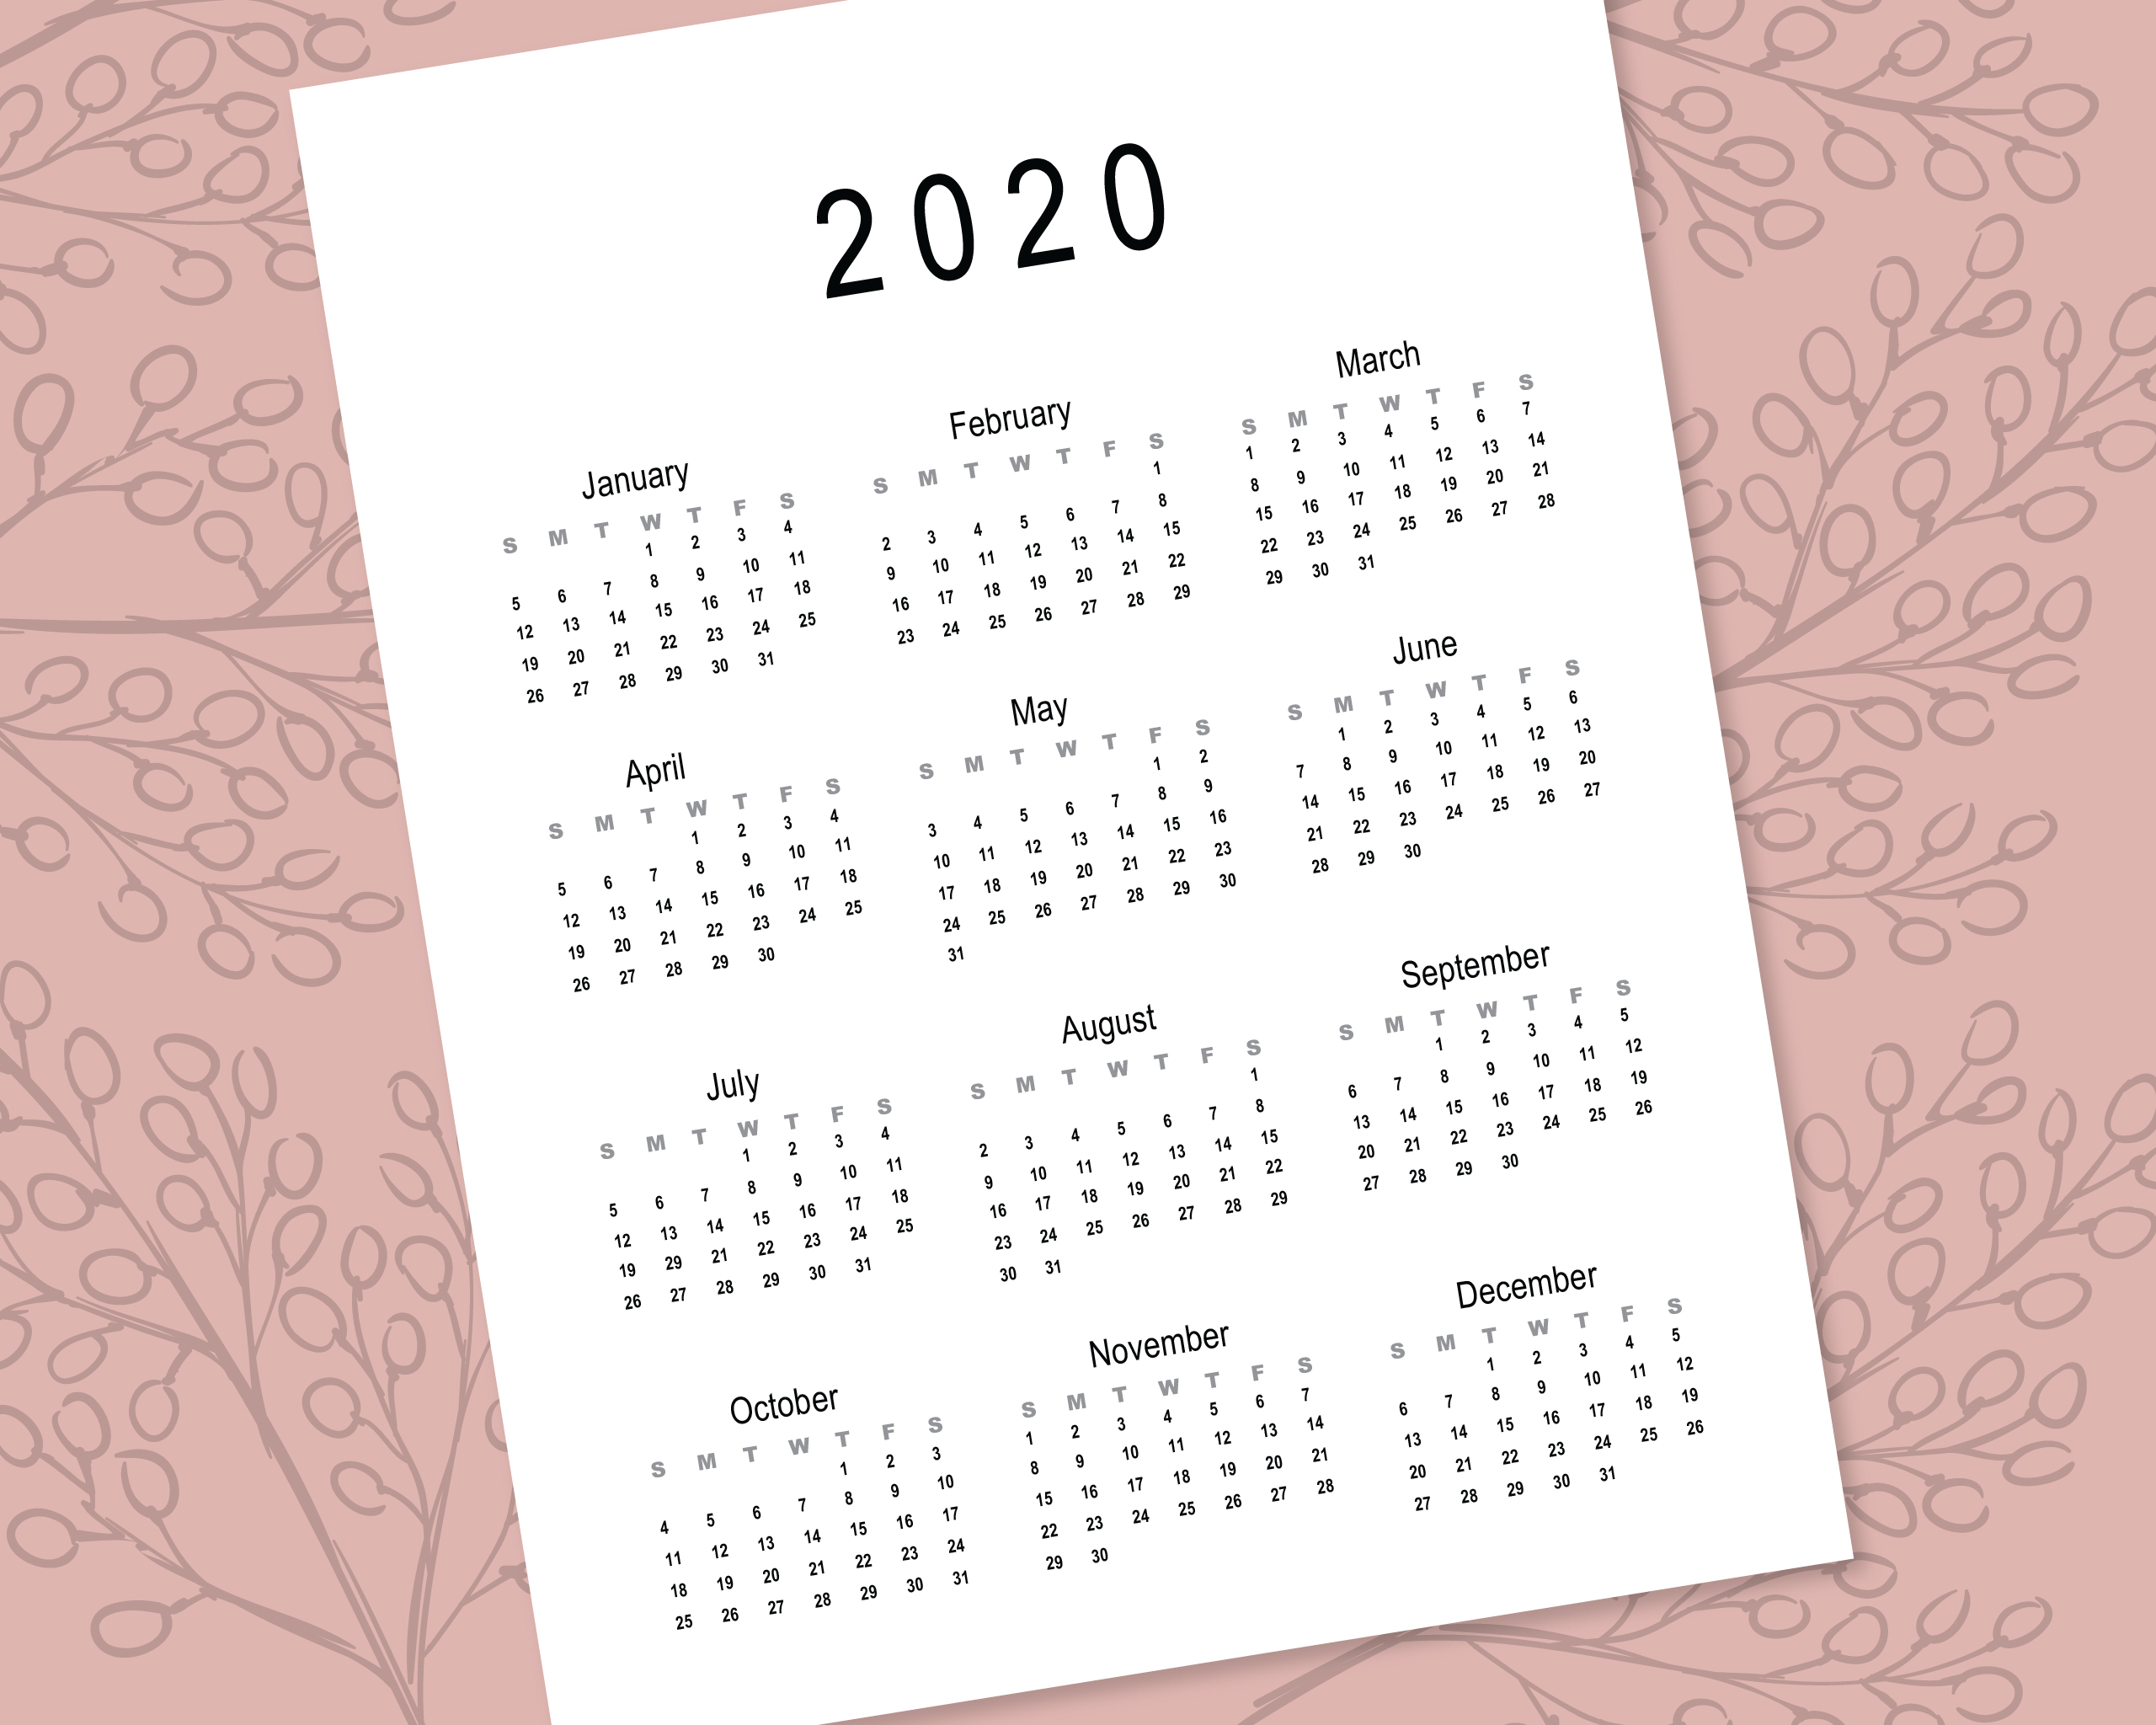 2020 Calendar Template for Commercial Use - PSD, EPS, PDF example image 6